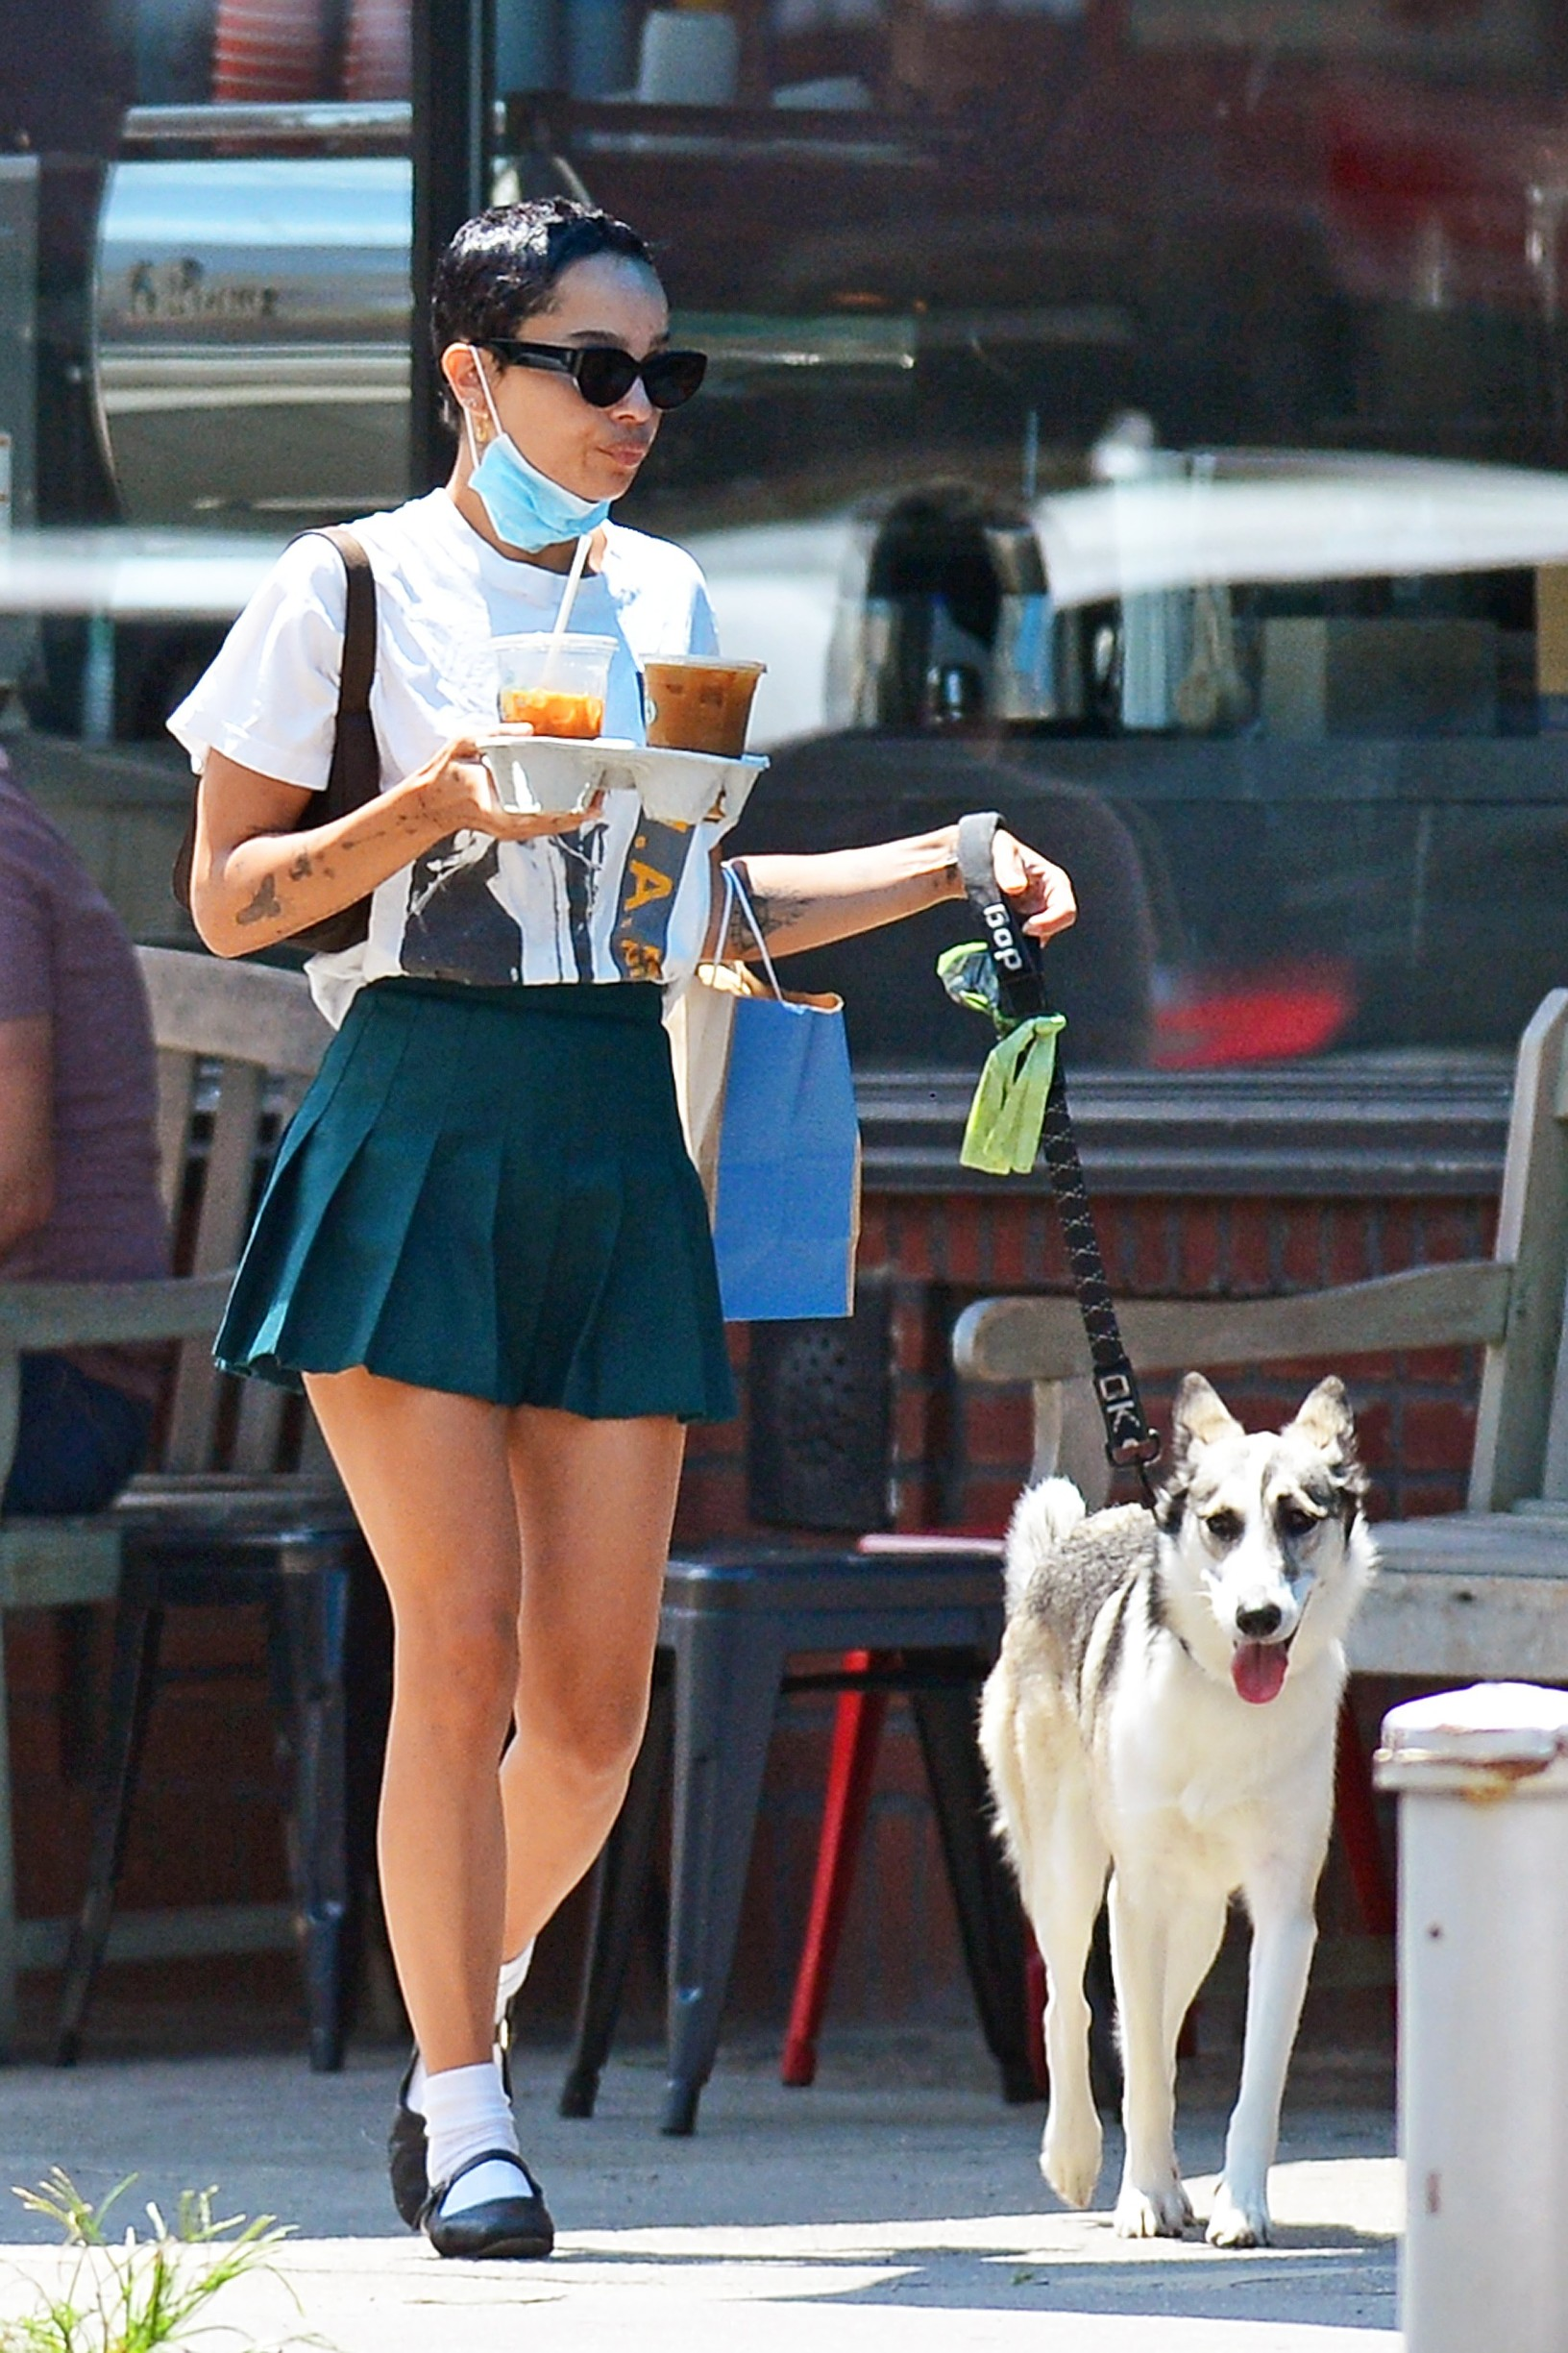 06/30/2020 EXCLUSIVE: Zoe Kravitz heads out for coffee with her dog in New York City. The 31 year old actress wore a face mask, vintage anti police t-shirt, green pleated mini skirt, white socks, and black flats.,Image: 537640083, License: Rights-managed, Restrictions: Exclusive NO usage without agreed price and terms. Please contact sales@theimagedirect.com, Model Release: no, Credit line: TheImageDirect.com / The Image Direct / Profimedia